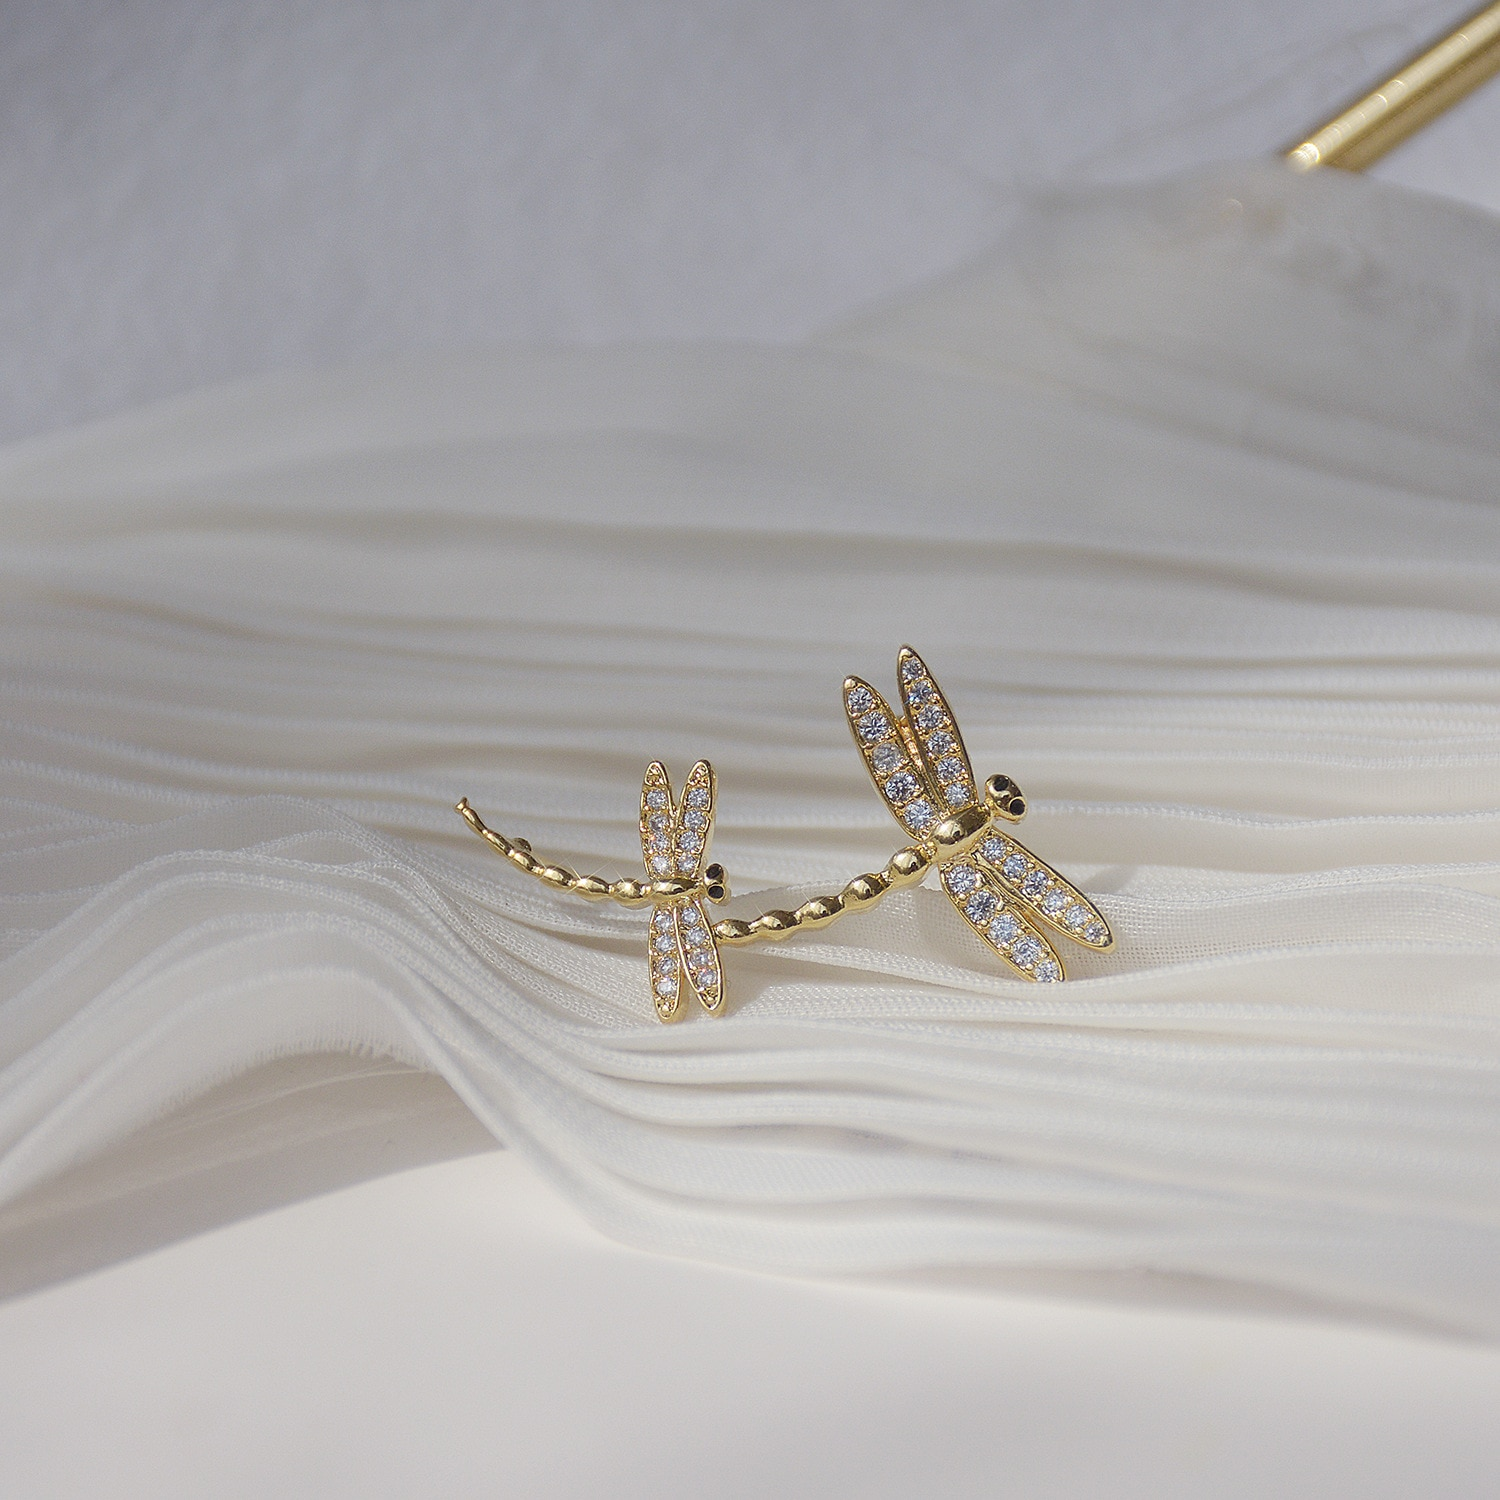 14K Real Gold Dragonfly Micro-inlaid Zircon Stud Earrings for Women Cubic Zircon ZC Earrings Date Jewelry  - buy with discount